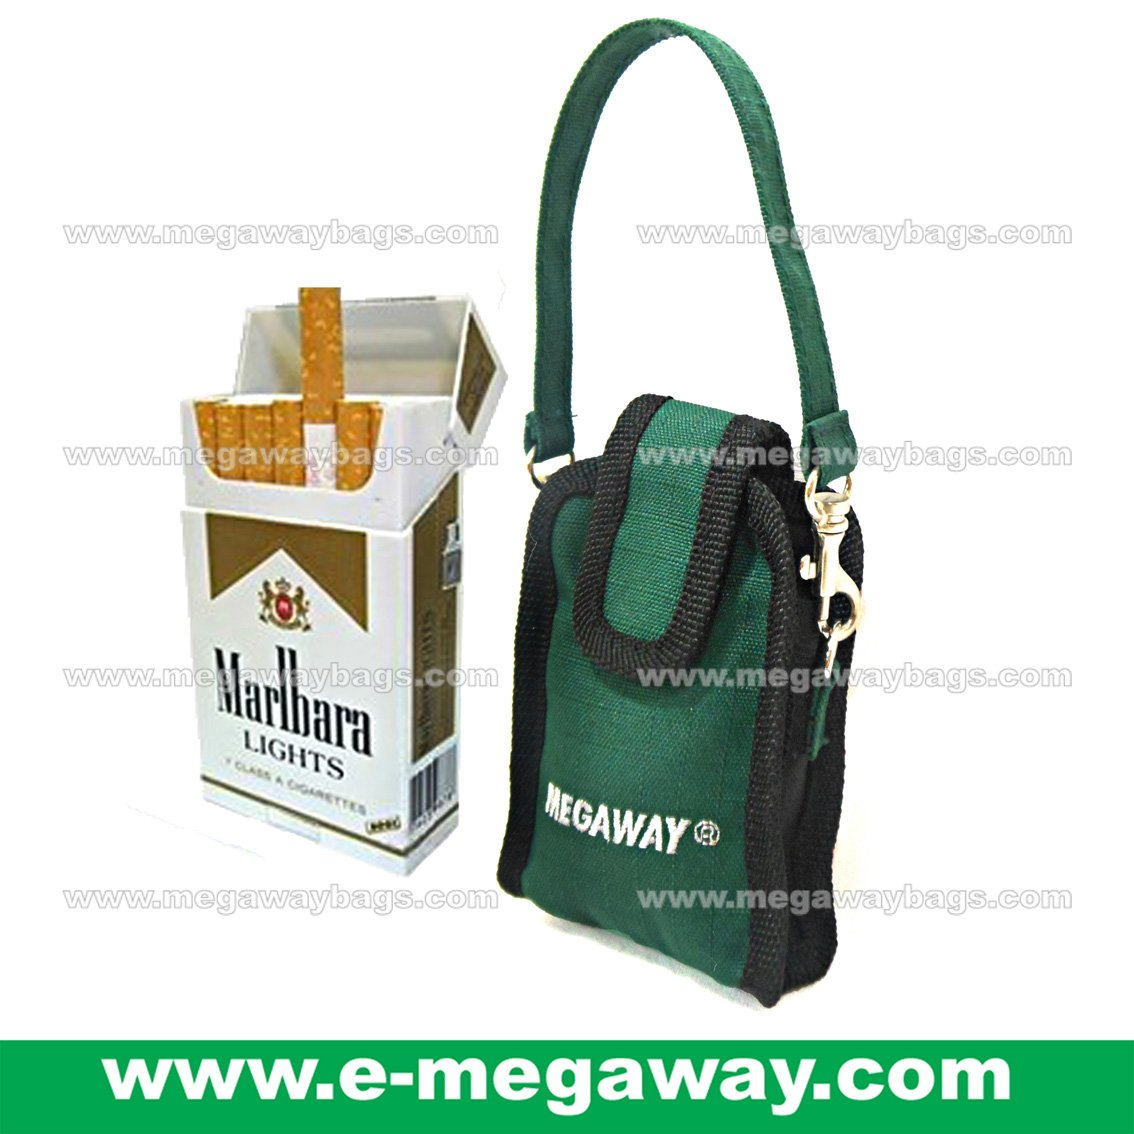 Cigar Cigarette Gifts Detachable Bags Boxes Case Pouch Smoker Travel MegawayBags #CC-1050